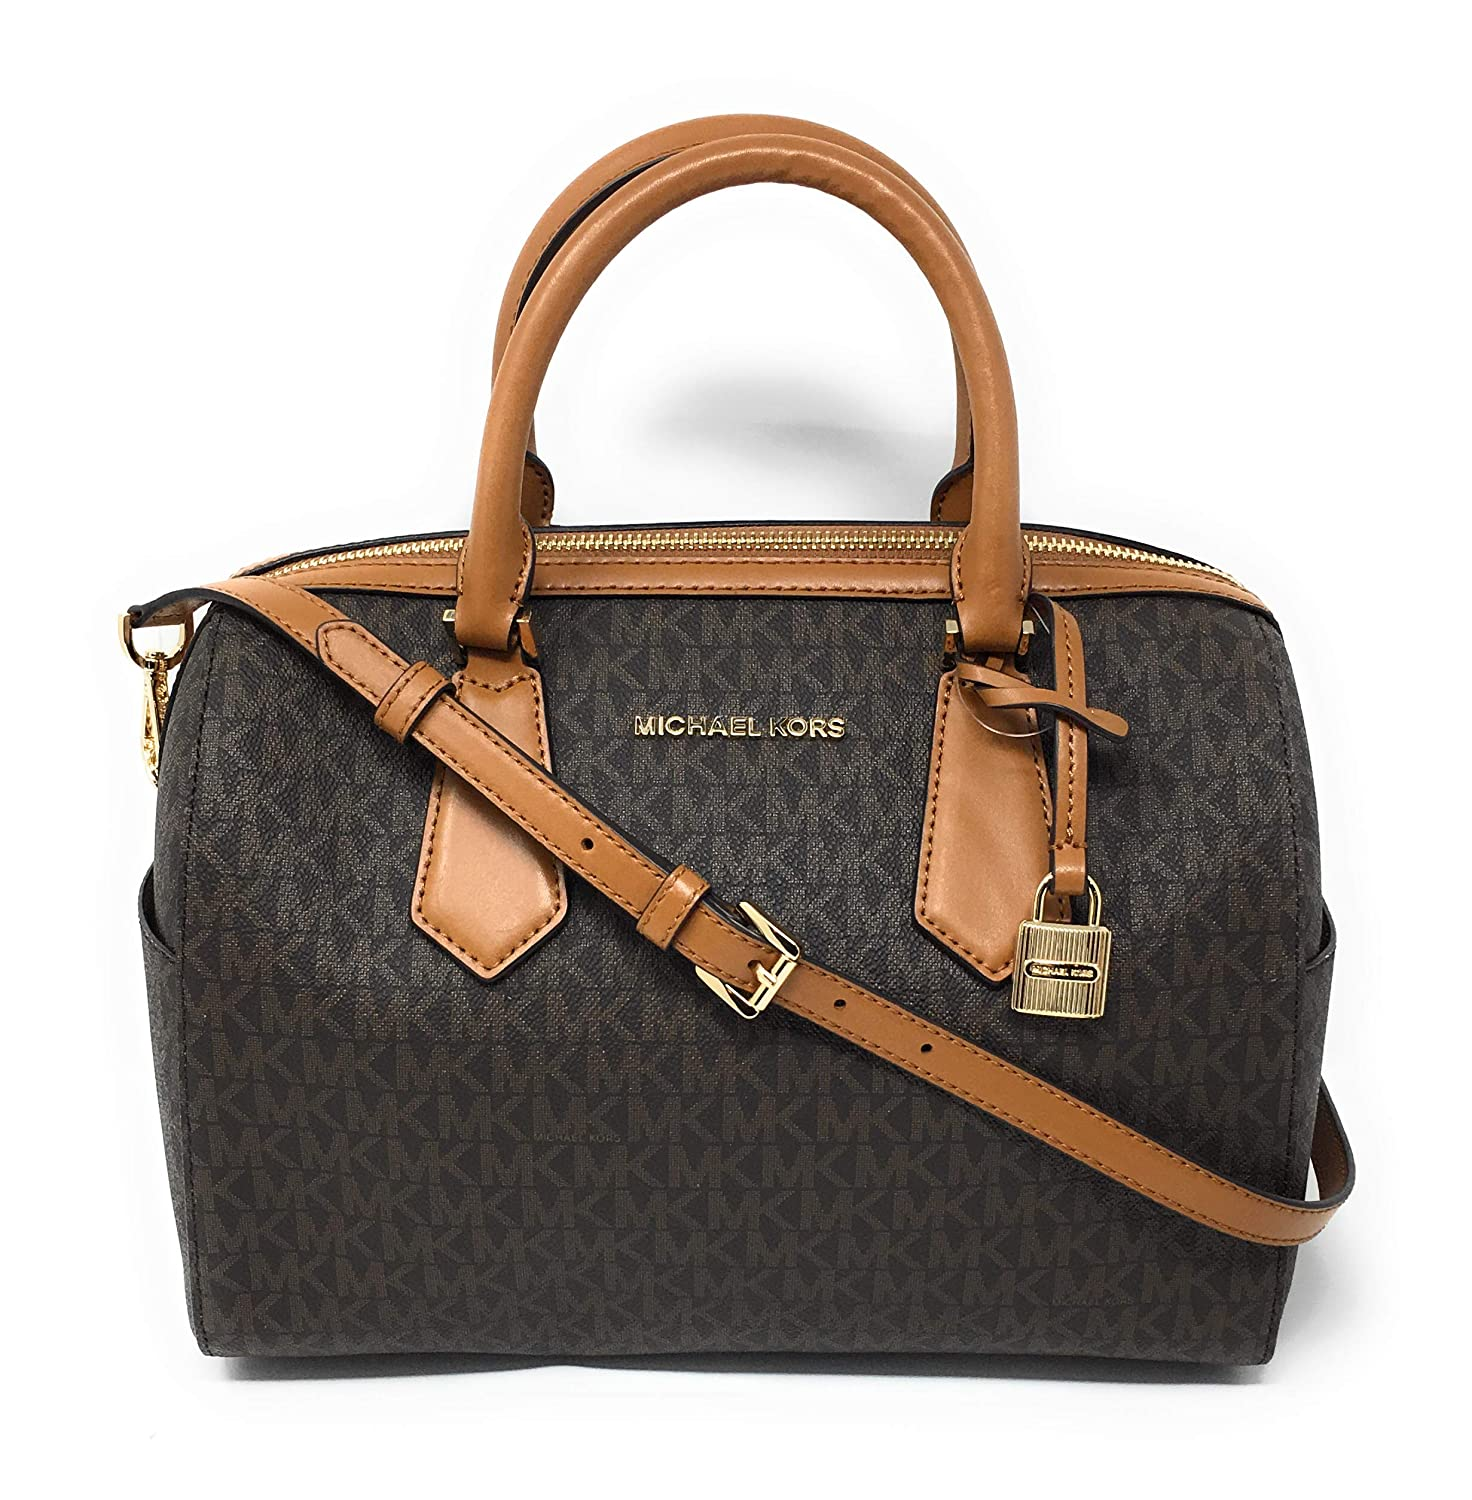 9793bbd75e6e Amazon.com  Michael Kors Hayes Large Duffle Satchel Bag Brown MK Signature   Shoes